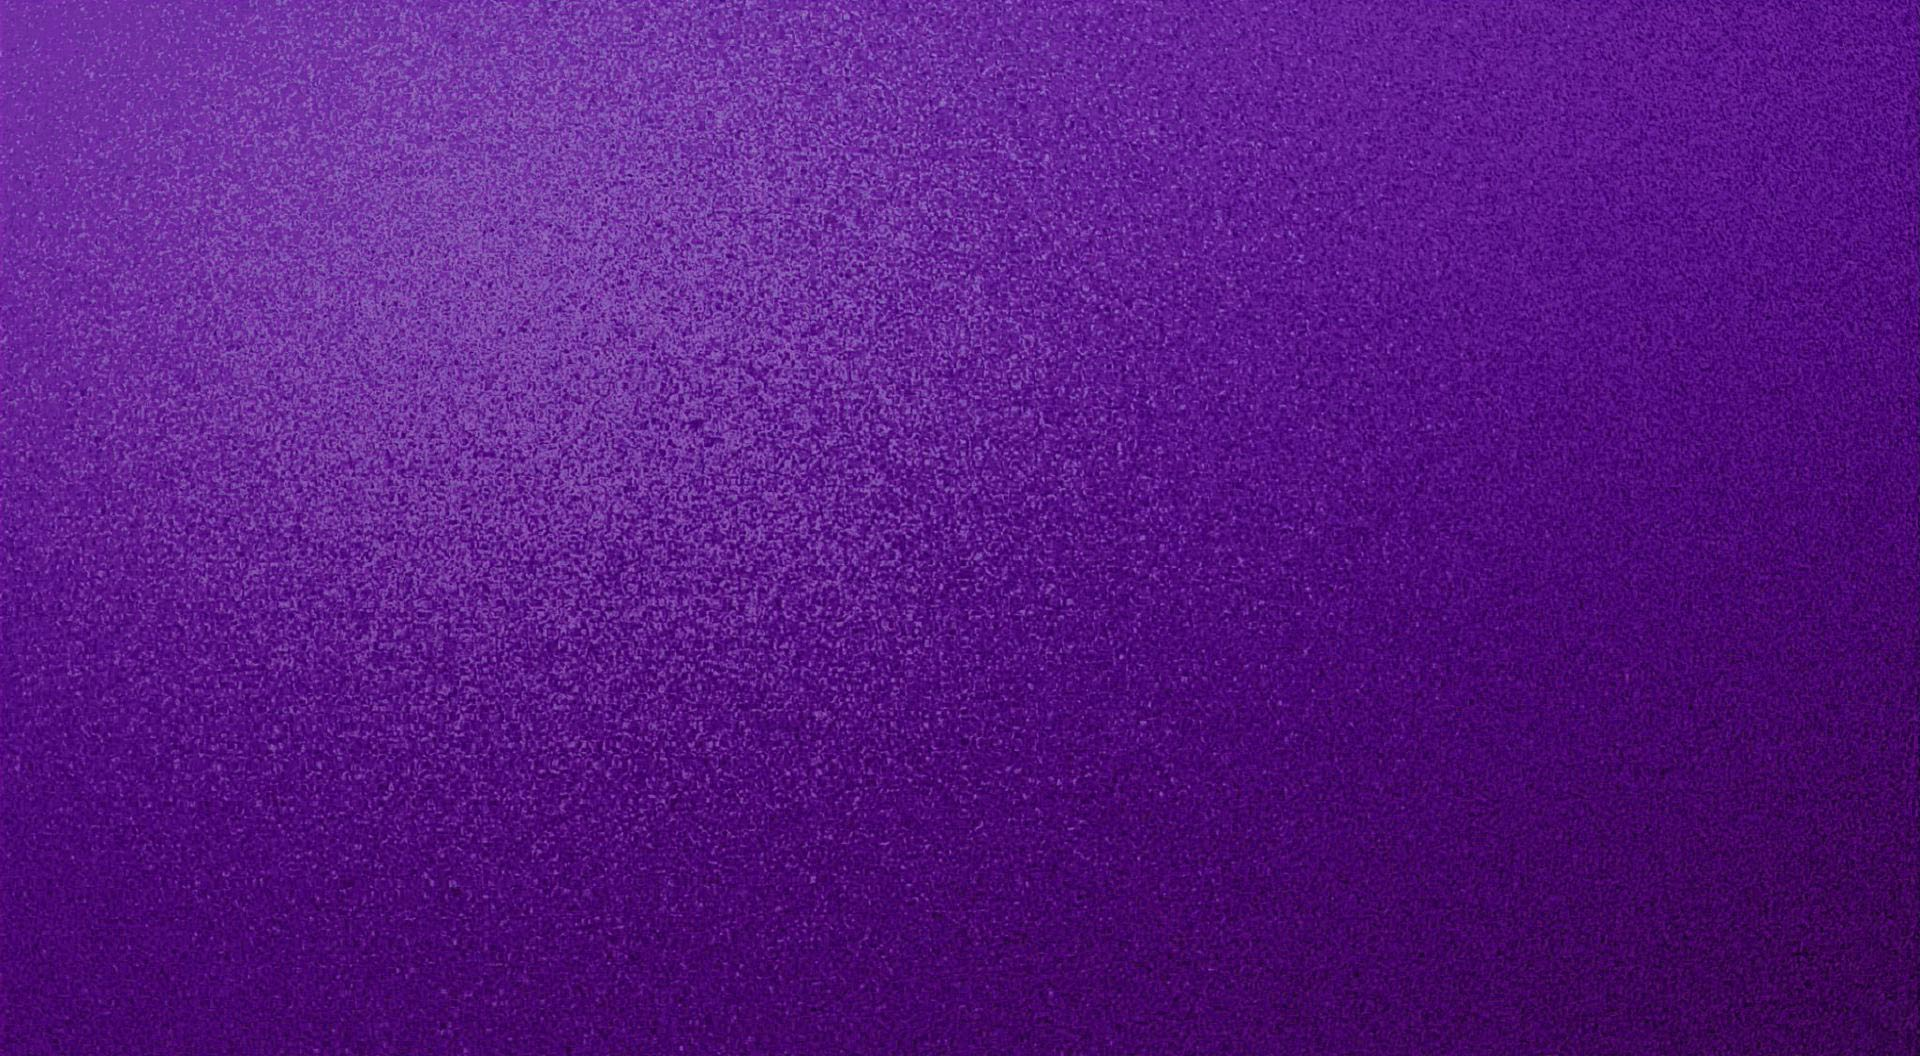 Purple Wallpaper Background - WallpaperSafari